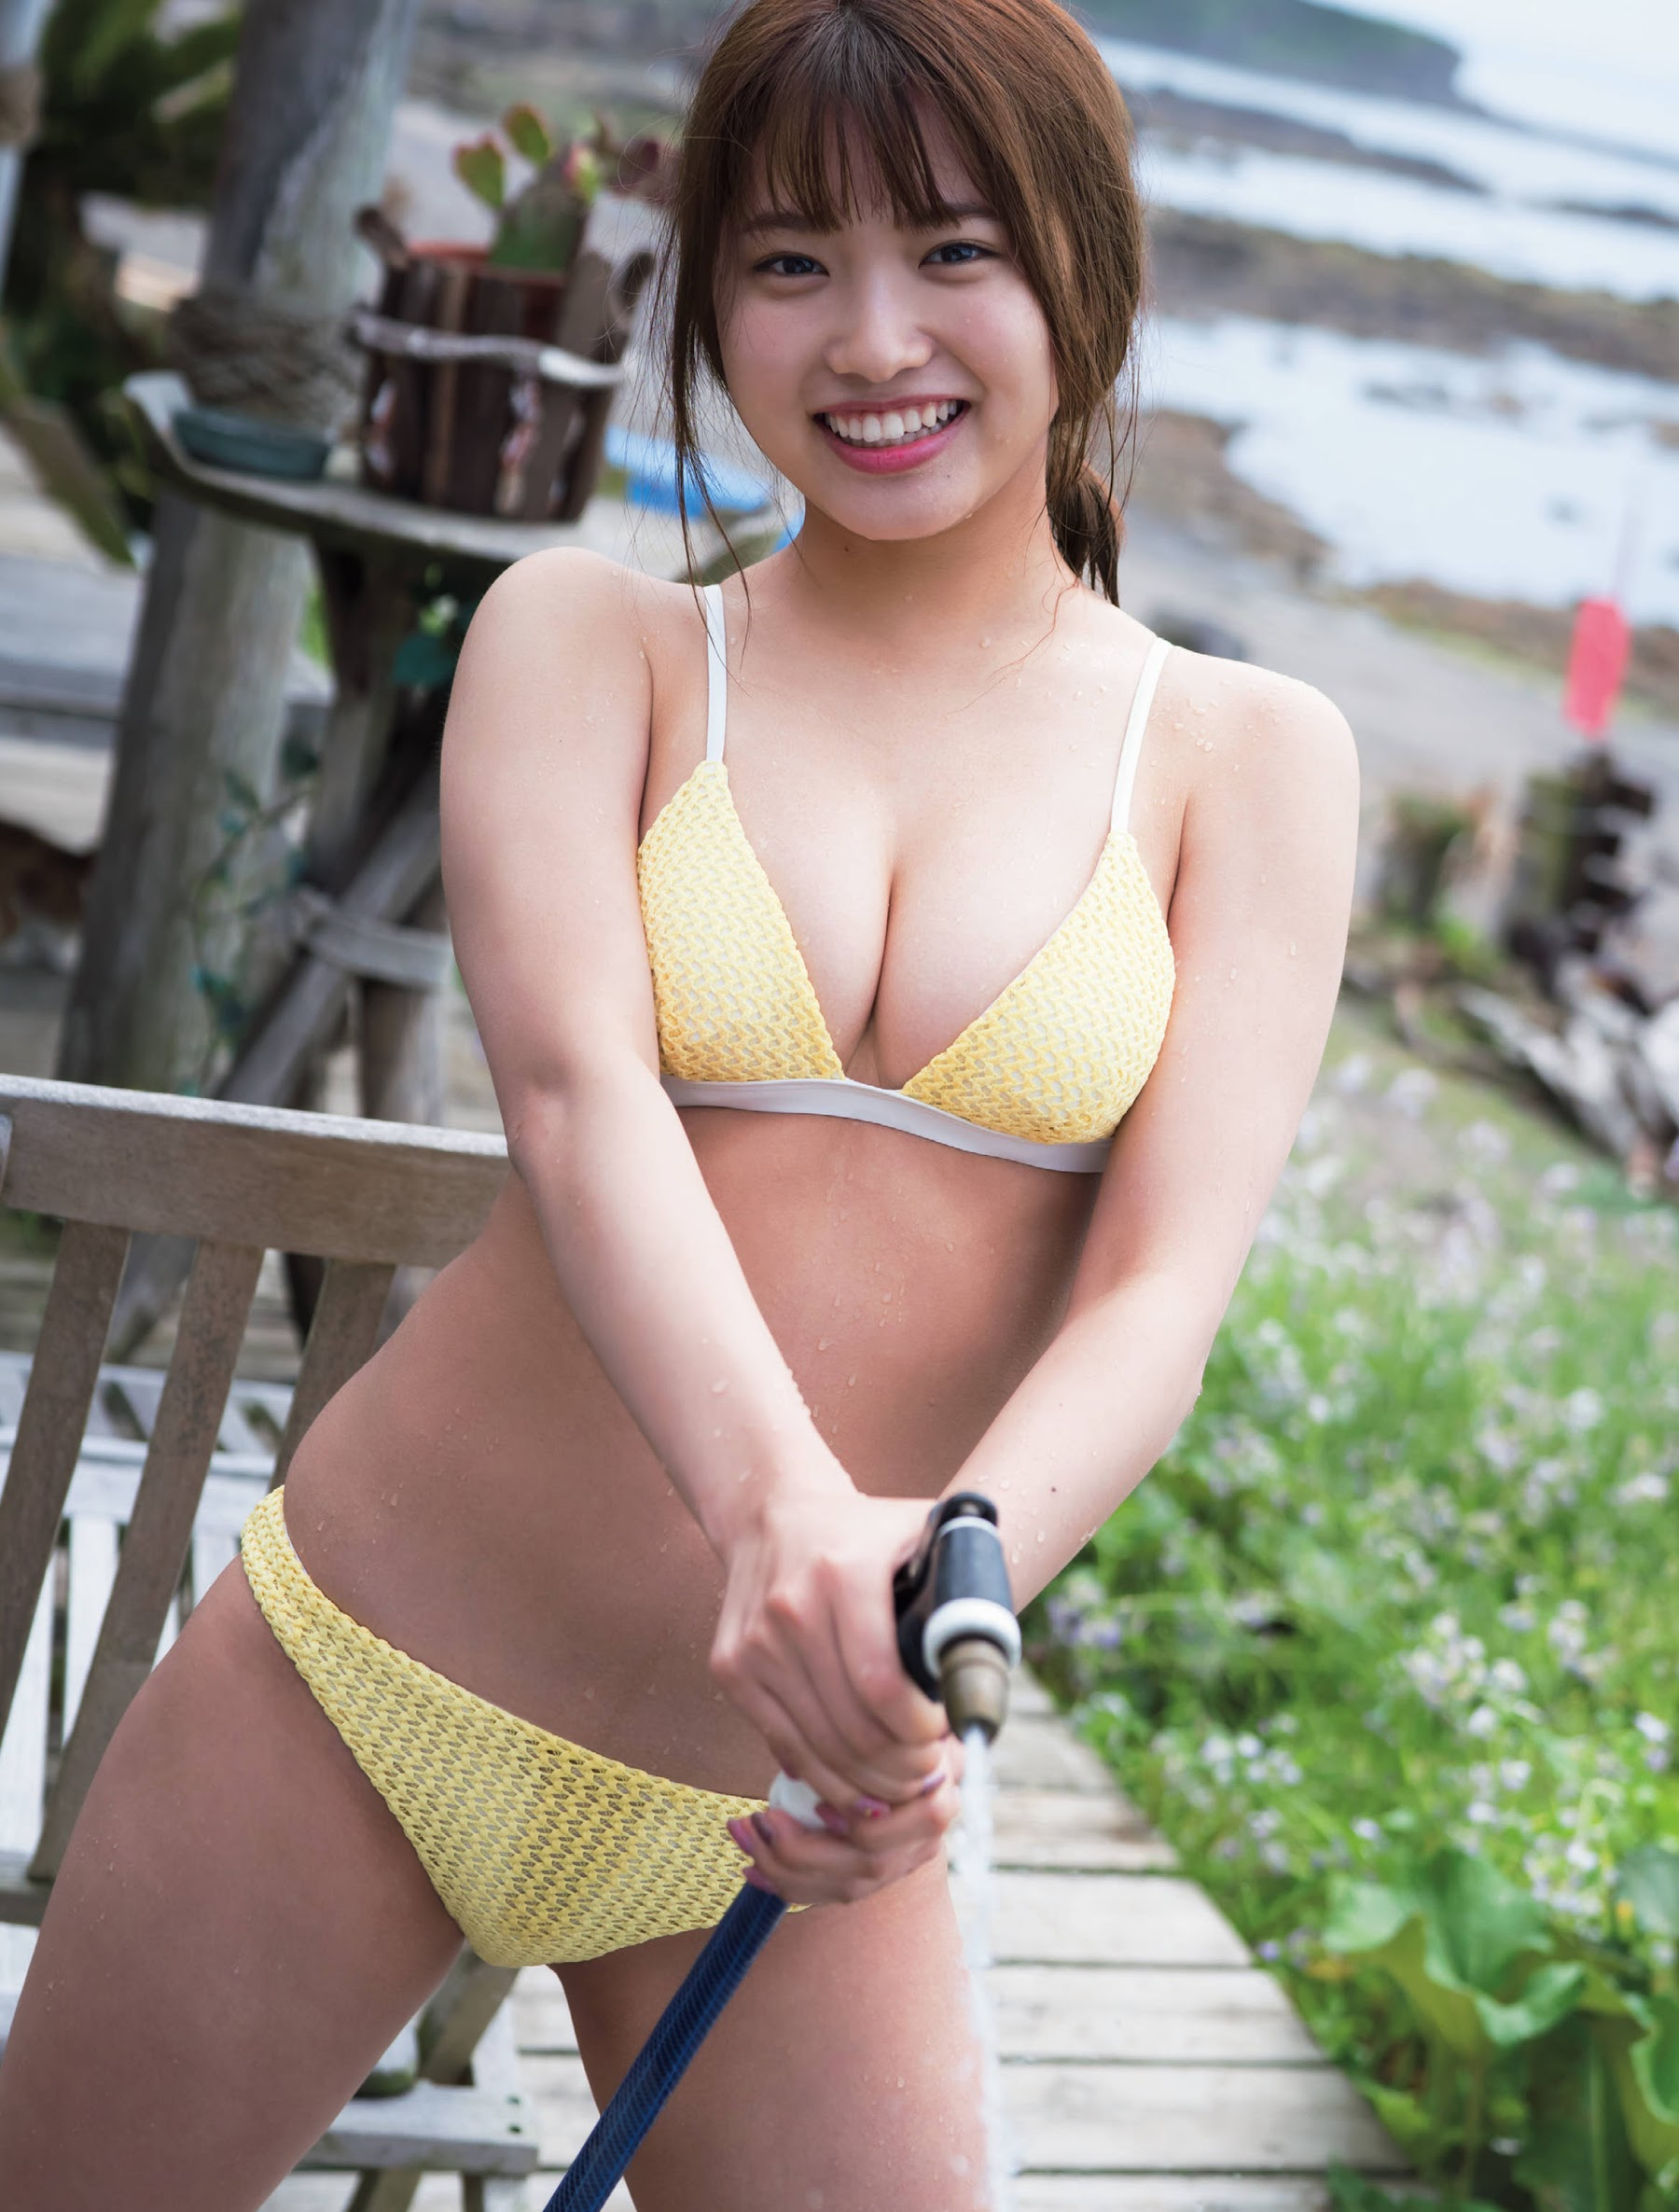 Youngest member of College 18 Airi Furuta 16 years old Bikini after school 2019005